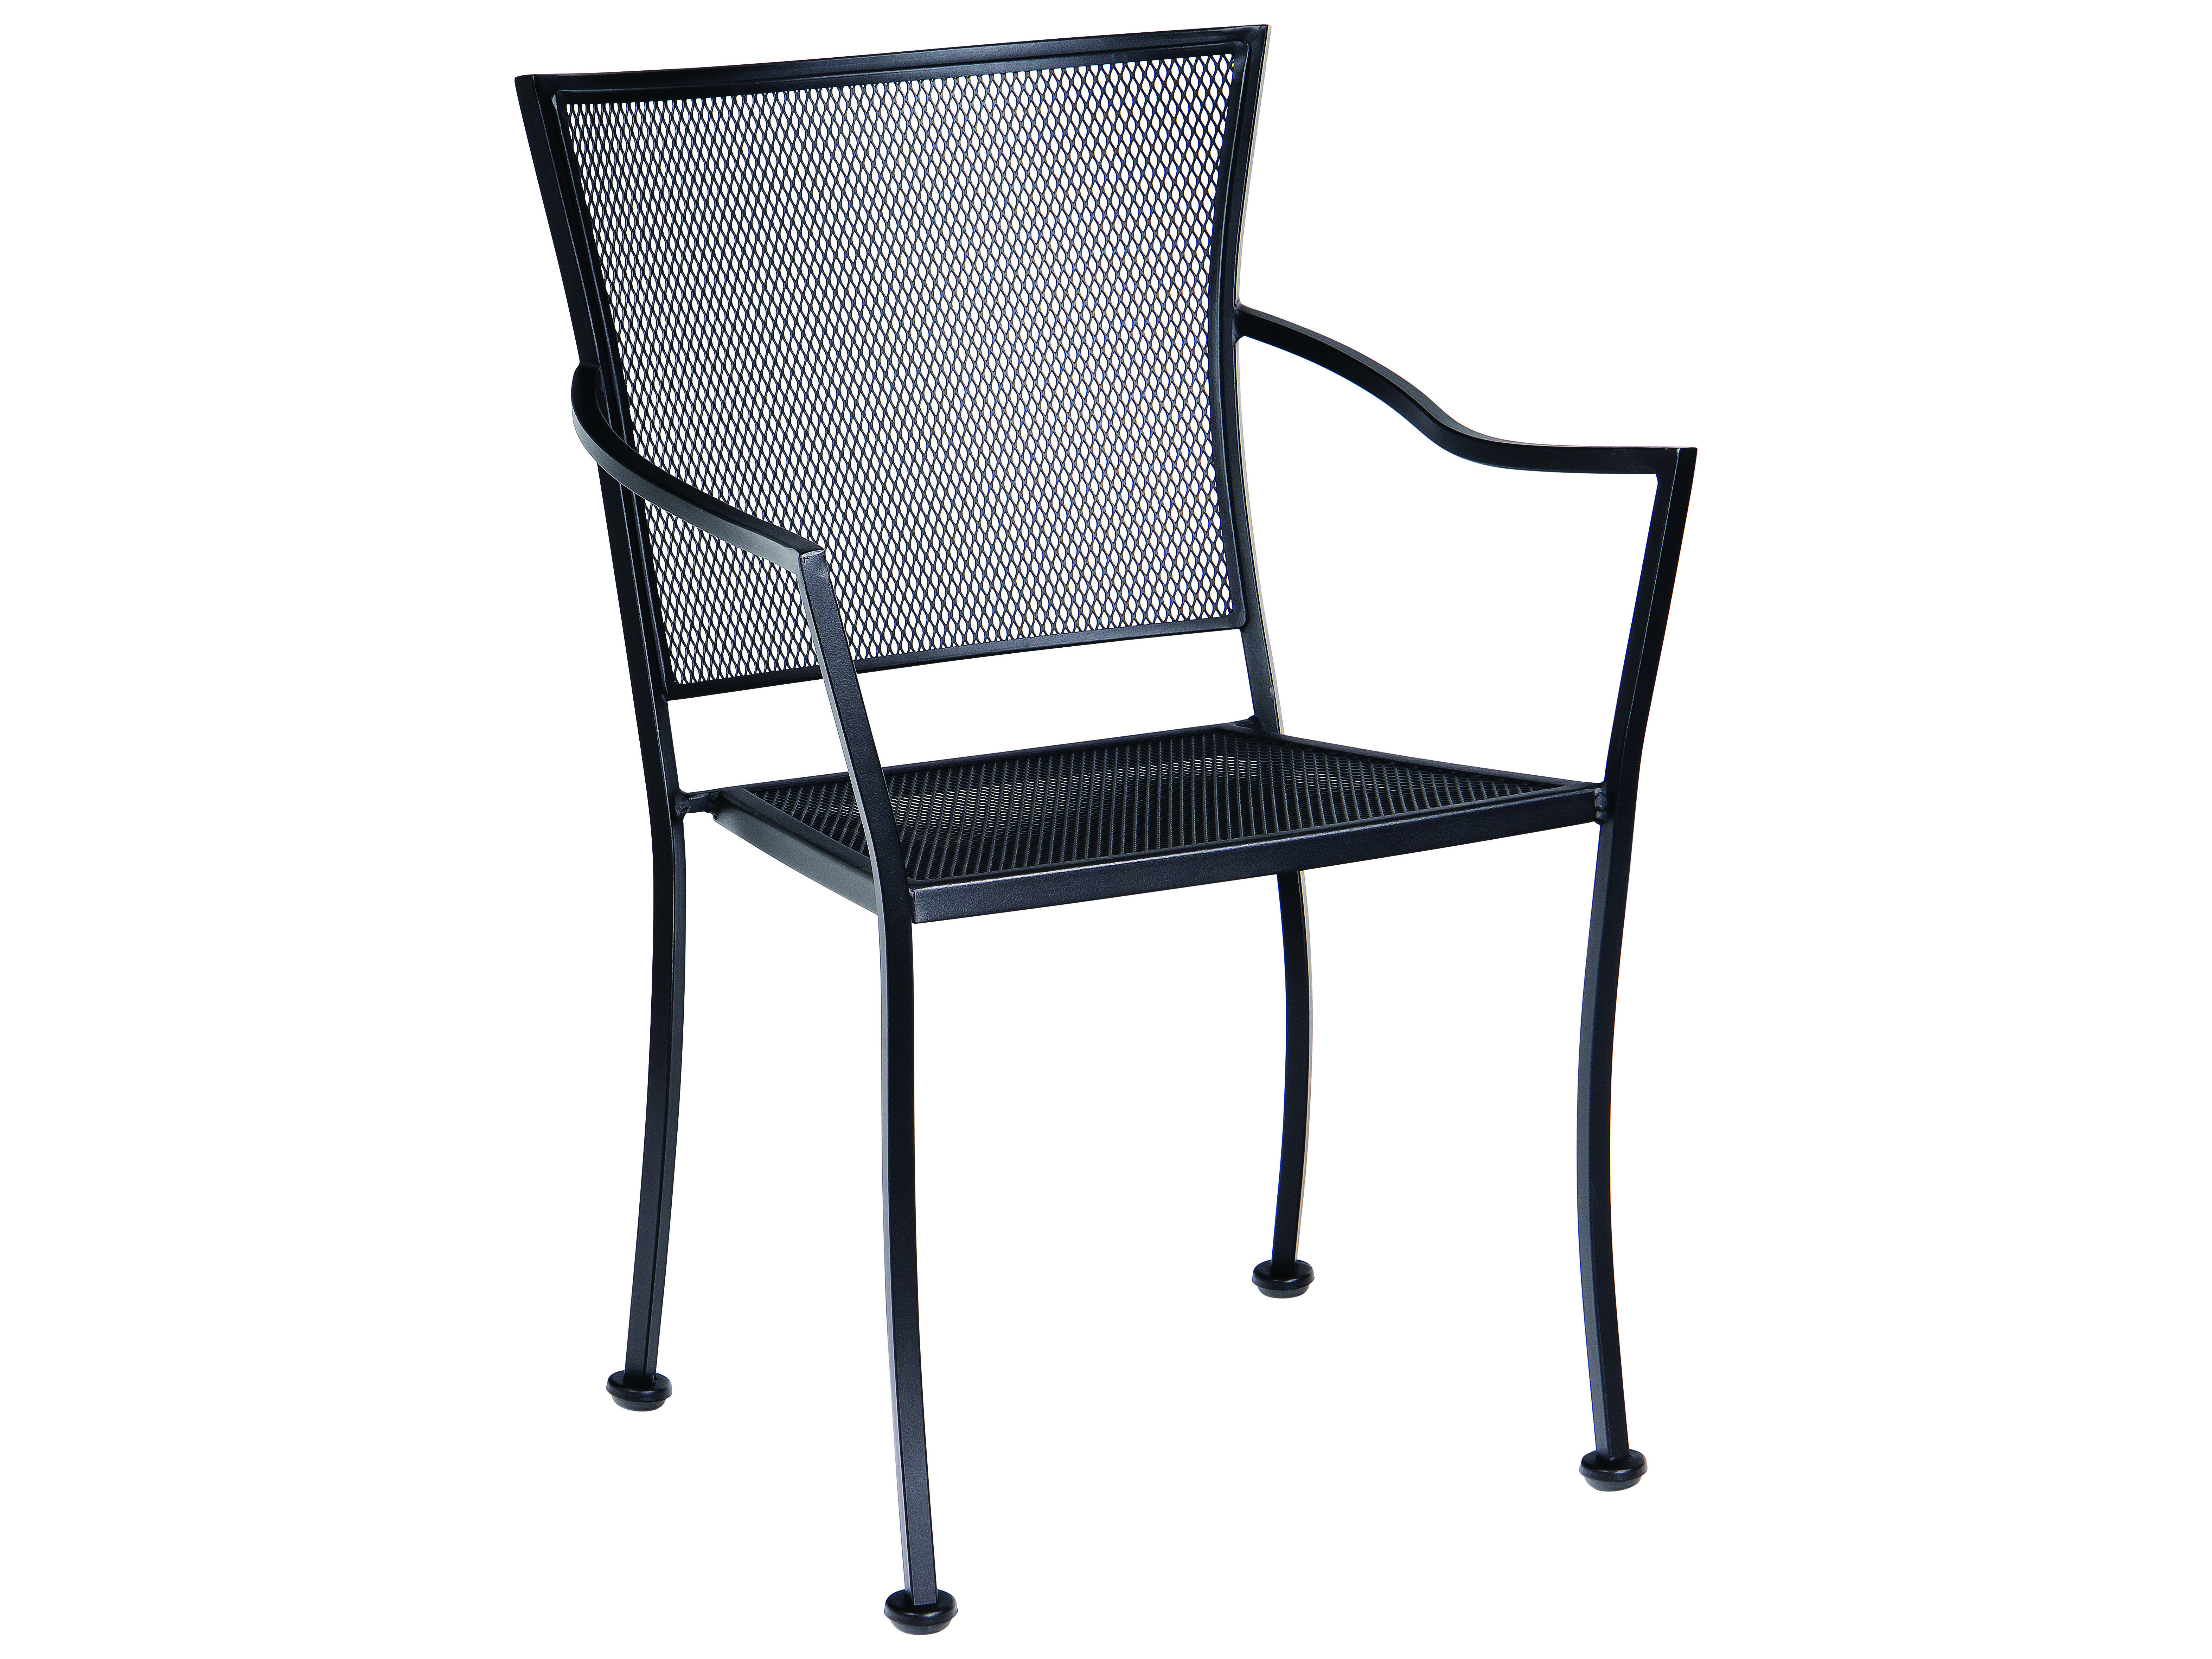 iron chair price gaming for xbox 360 woodard amelie wrought stackable bistro arm